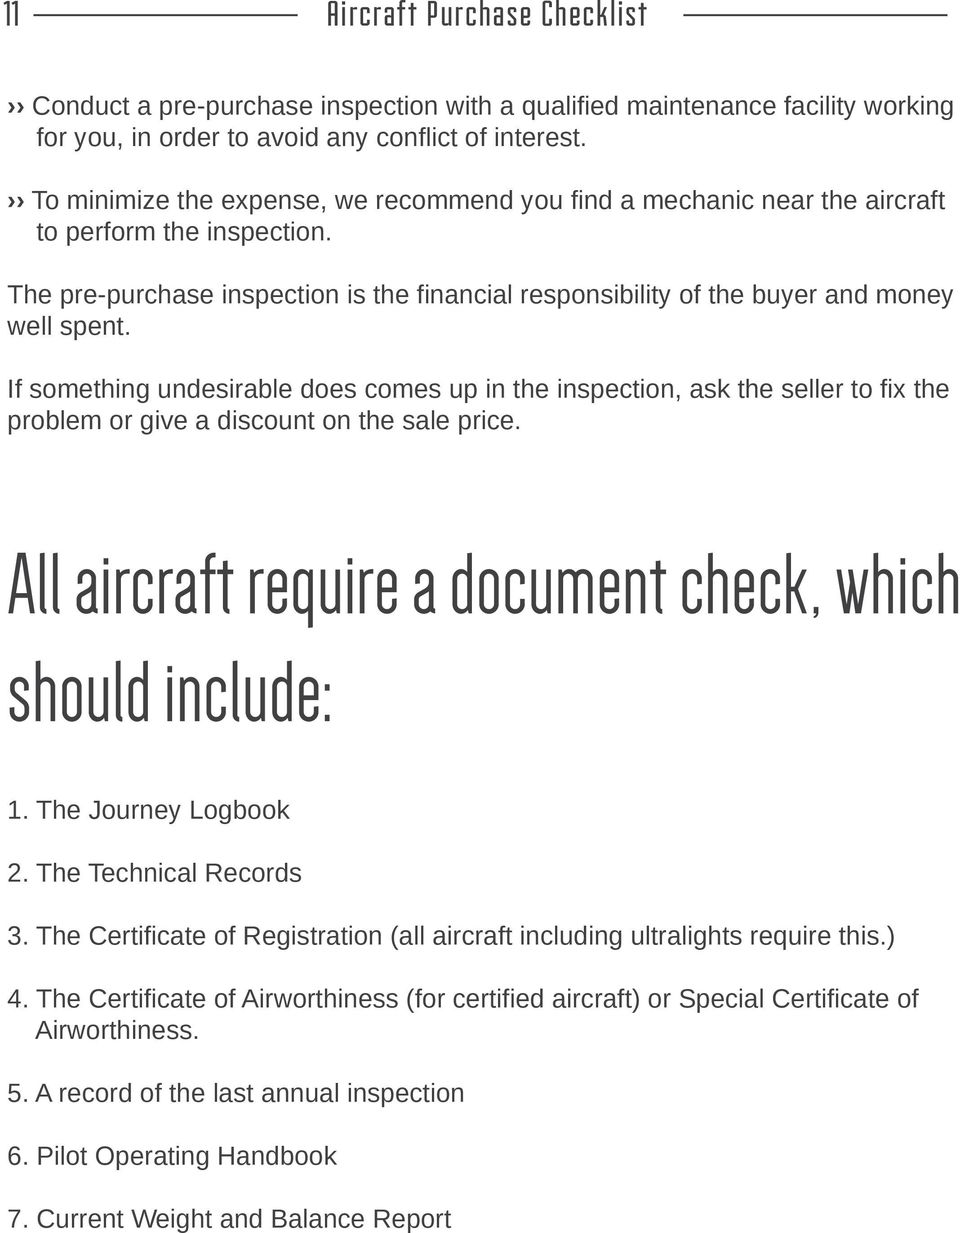 If something undesirable does comes up in the inspection, ask the seller to fix the problem or give a discount on the sale price. All aircraft require a document check, which should include: 1.